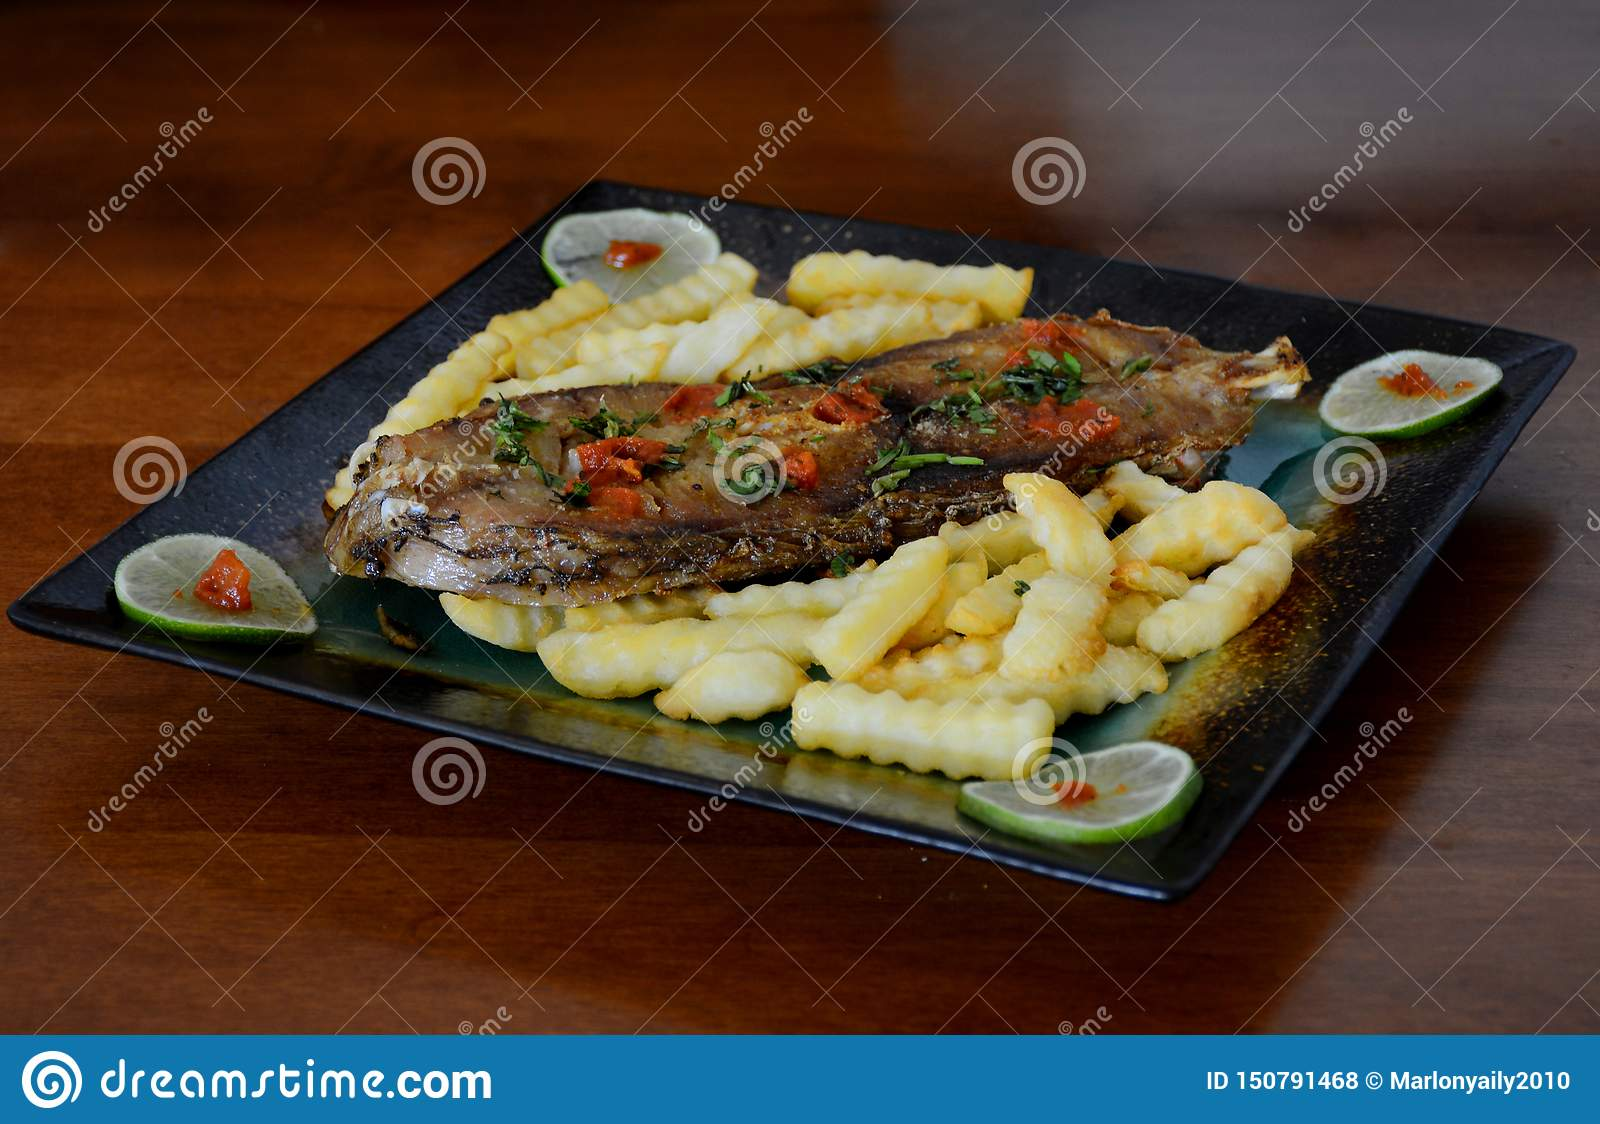 Fried Fish Steak With French Fries